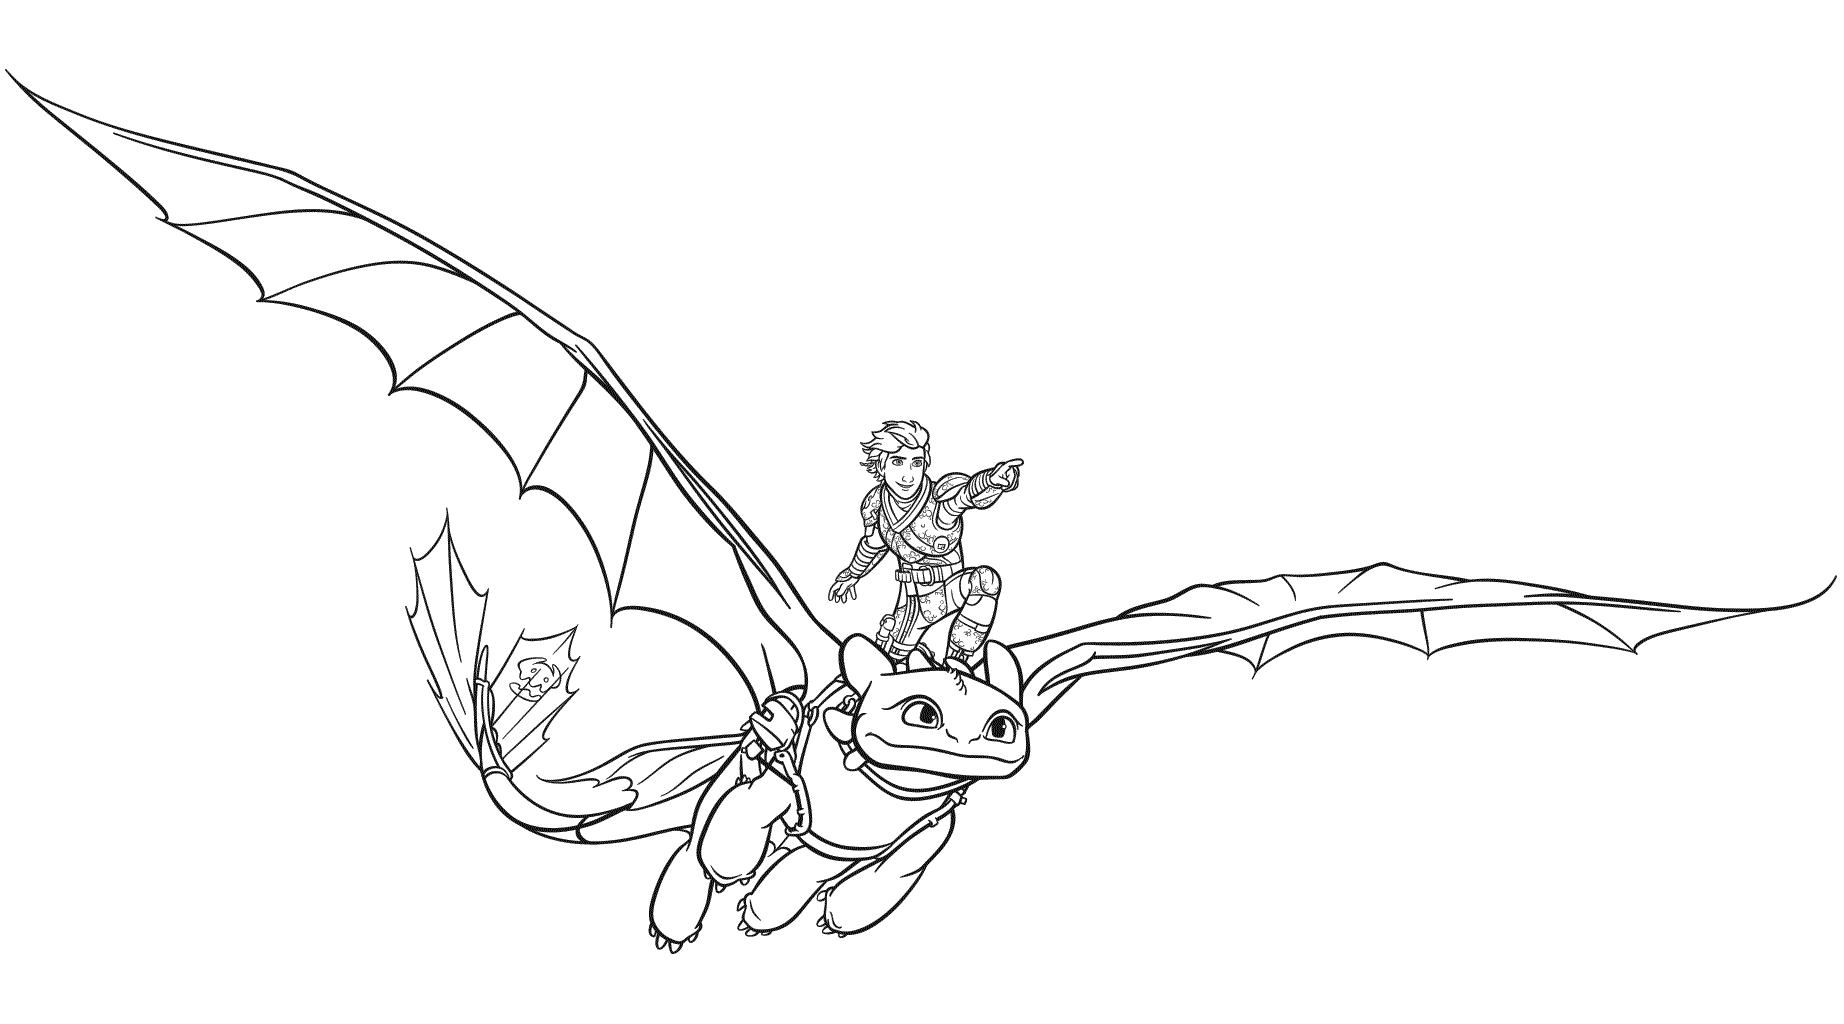 toothless coloring page pictures of toothless from how to train your dragon coloring toothless page